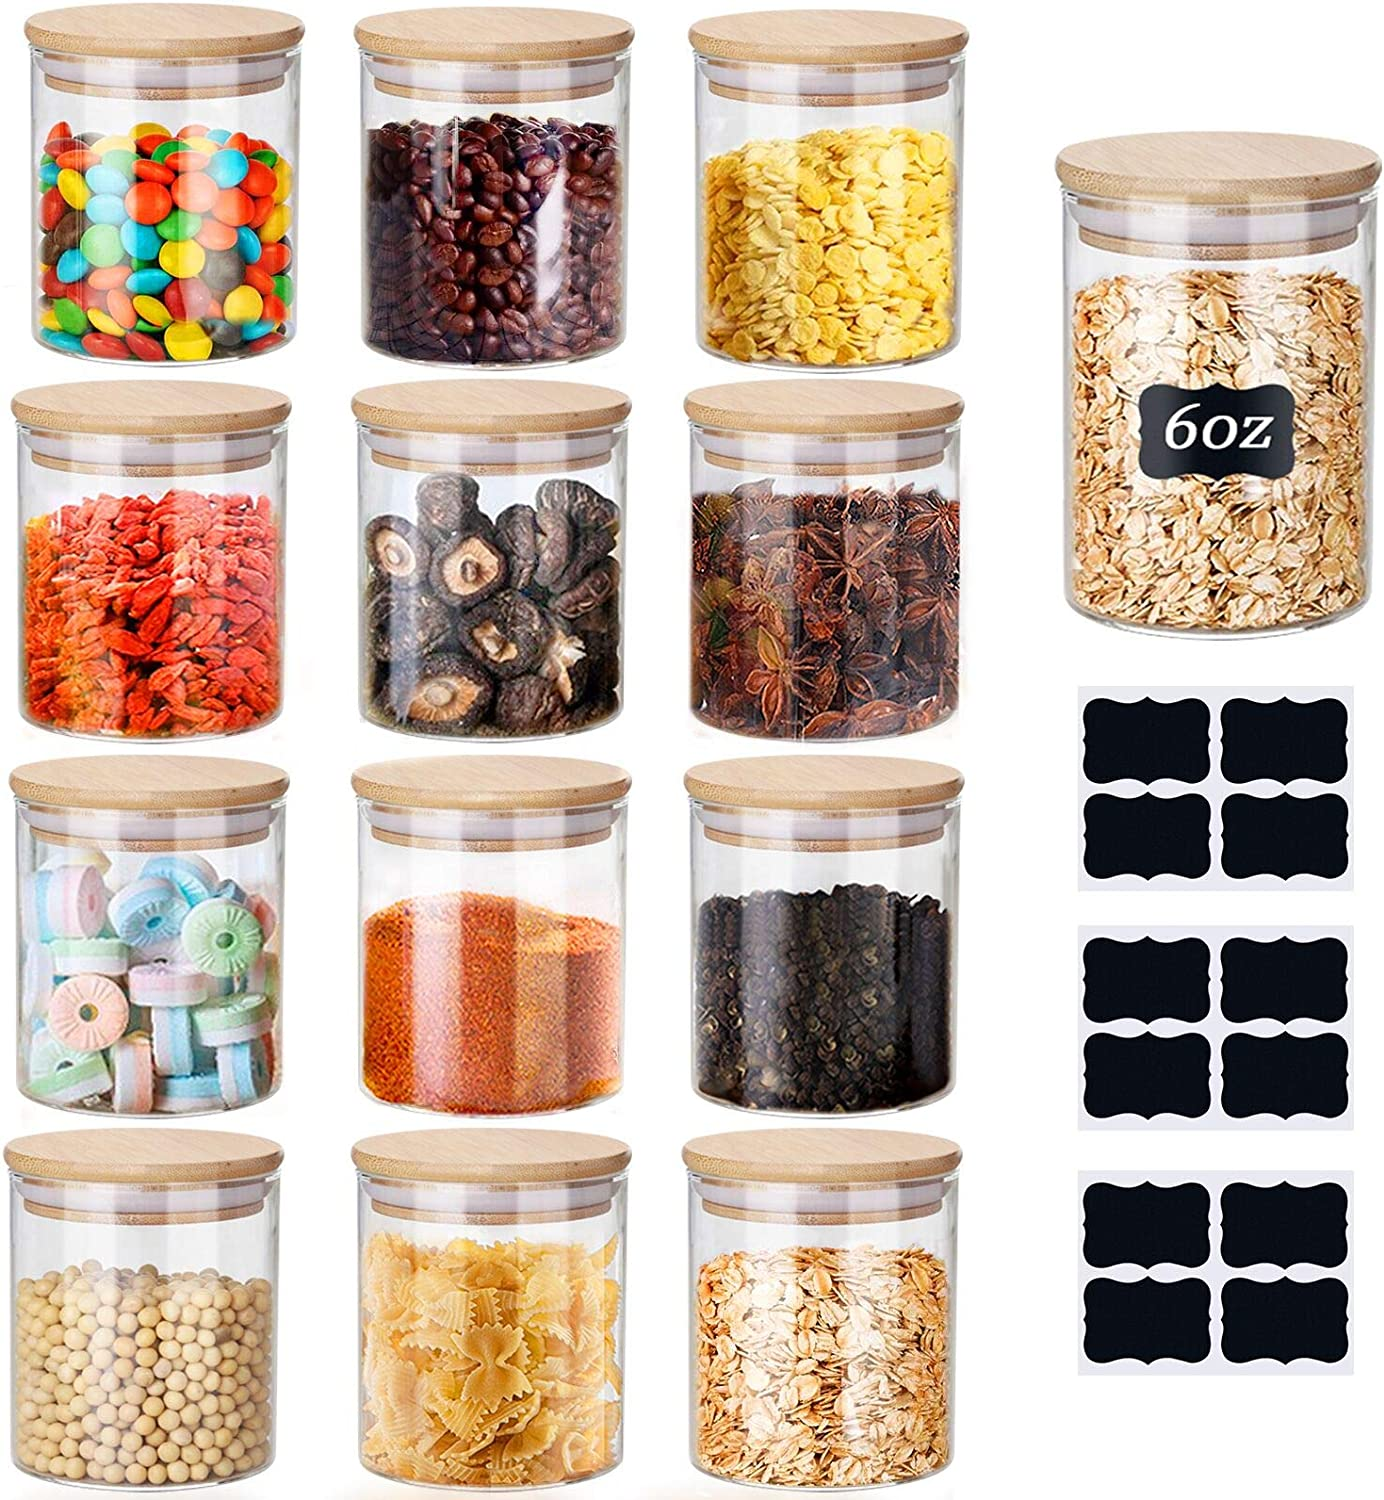 Glass Jars Set, Yibaodan 12 Set 6oz Spice Jars with Bamboo Airtight Lids and Labels, Food Cereal Storage Containers for Home Kitchen Tea Herbs Pasta Coffee Flour Herbs Grains